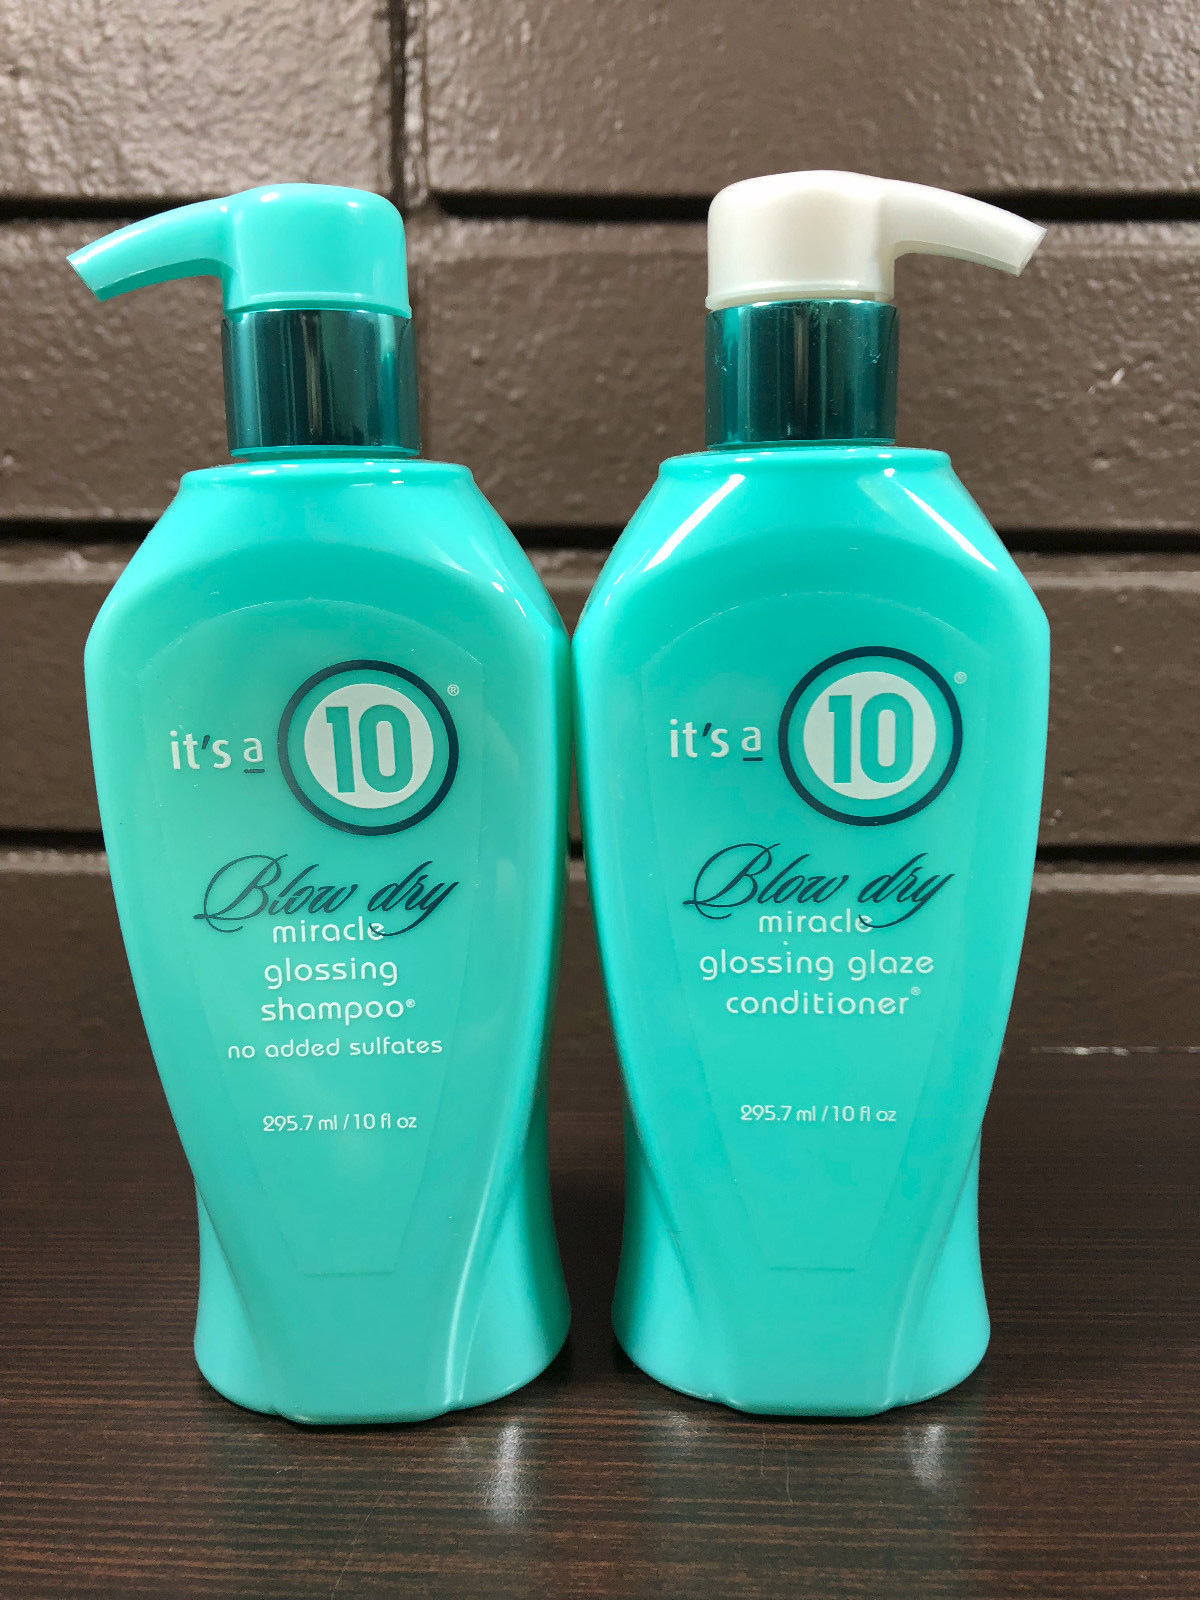 It's A 10 Blow Dry Miracle Glossing Shampoo & Glossing Glaze Conditioner 10oz